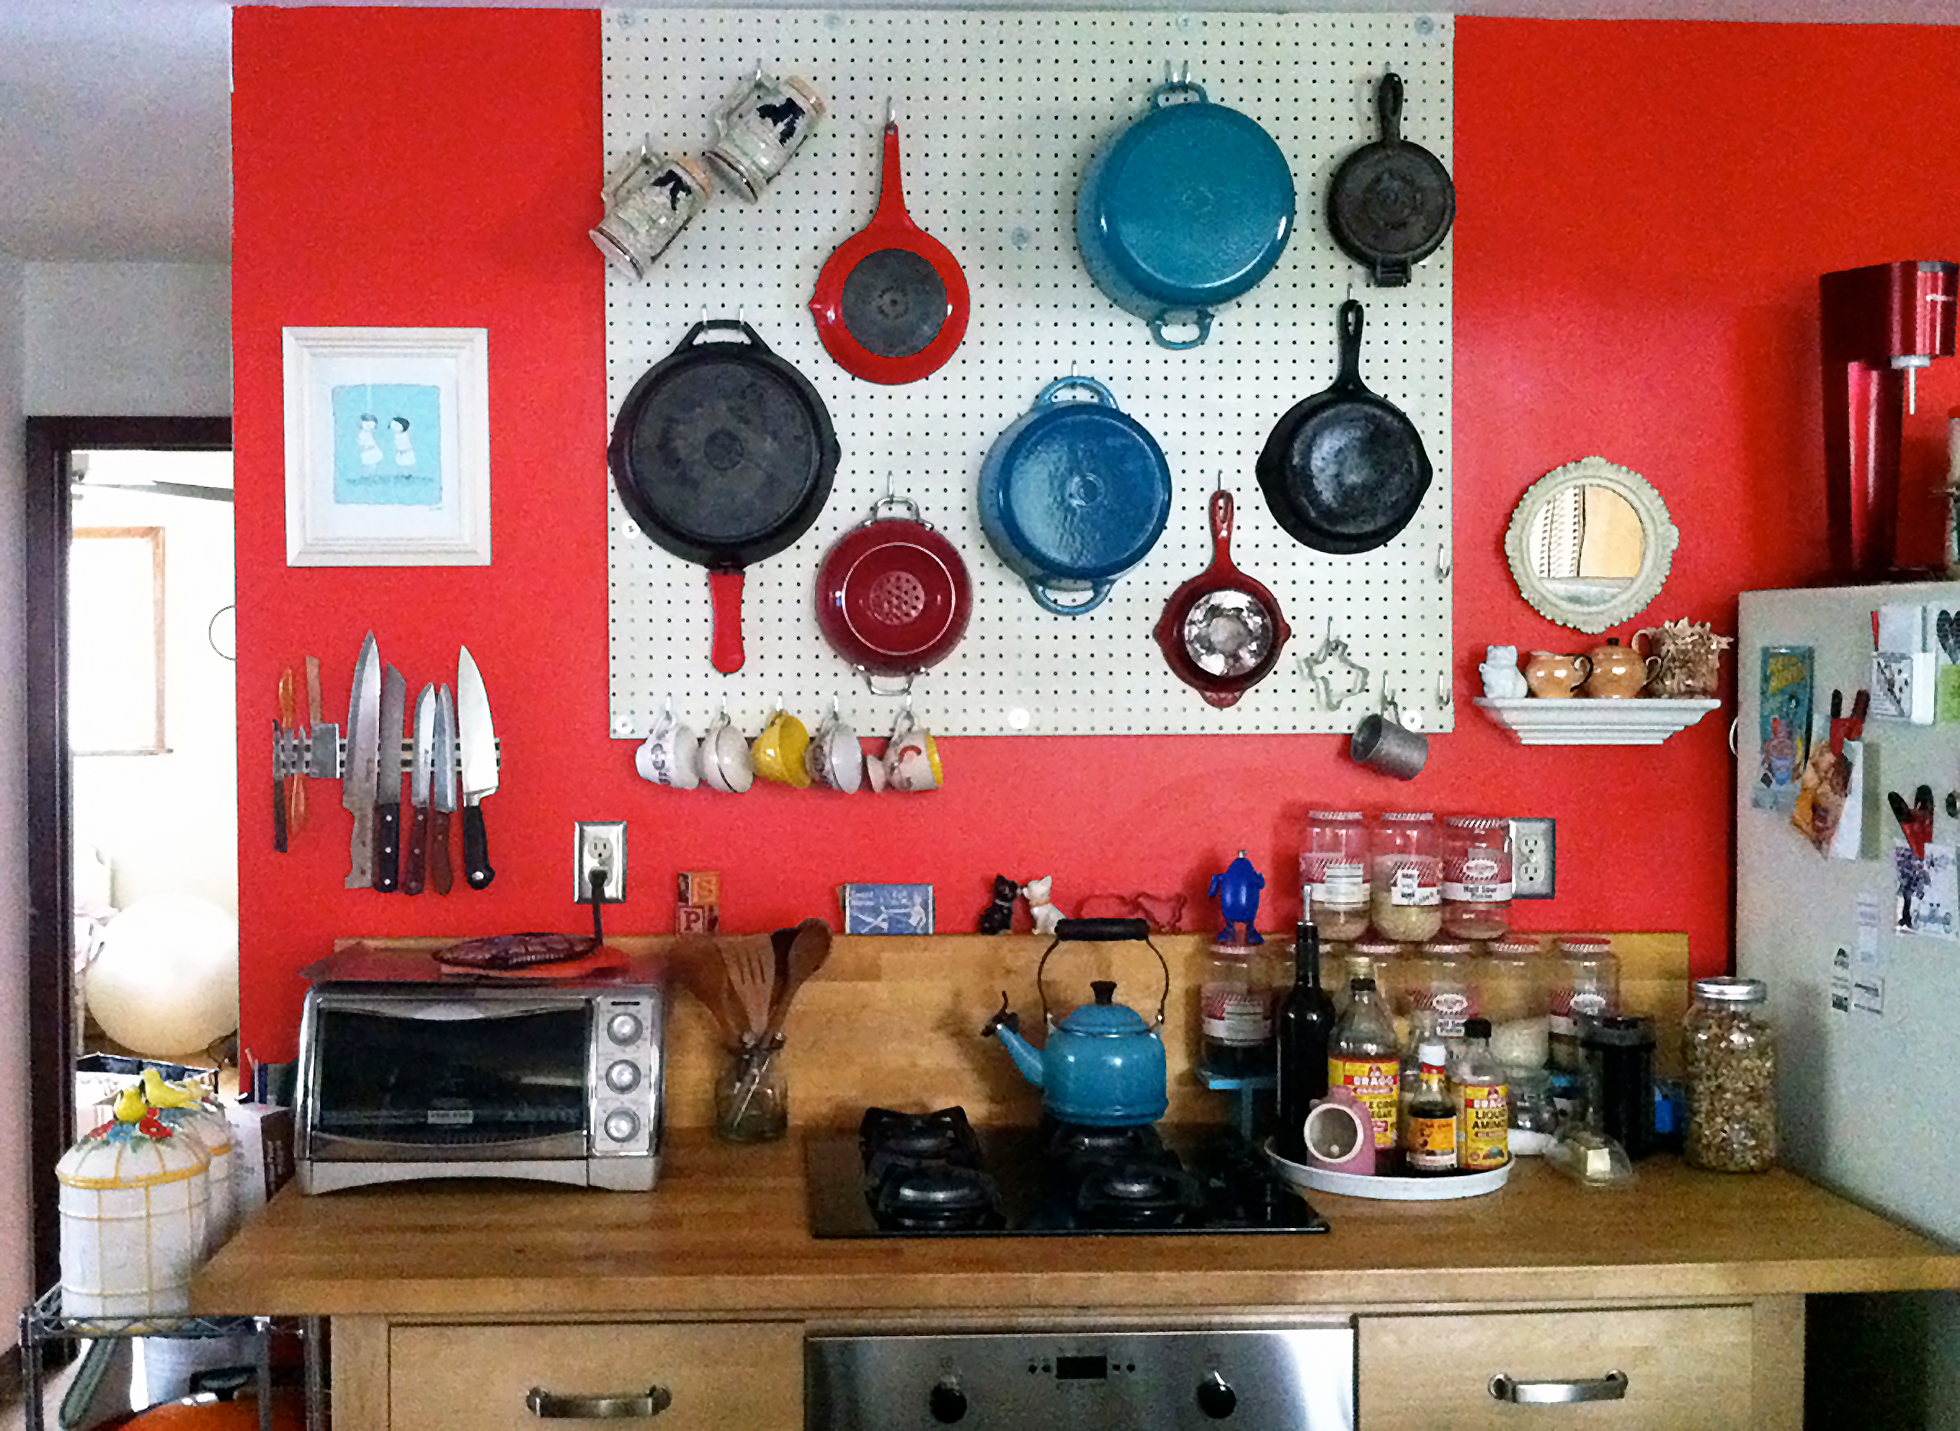 Red pegboard wall in a kitchen with pots and pans